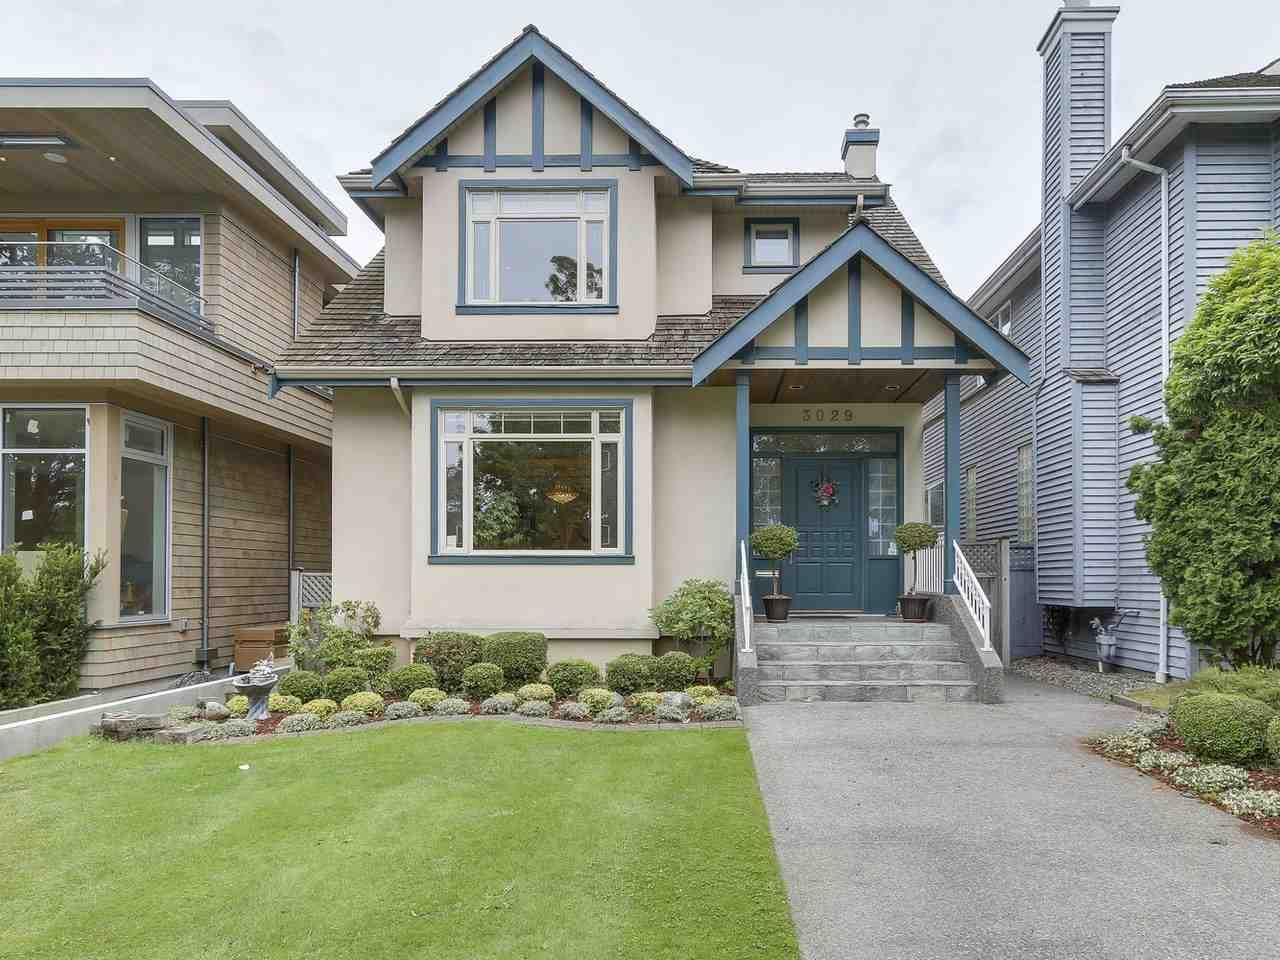 Main Photo: 3029 W 29TH AVENUE in Vancouver: MacKenzie Heights House for sale (Vancouver West)  : MLS®# R2178522